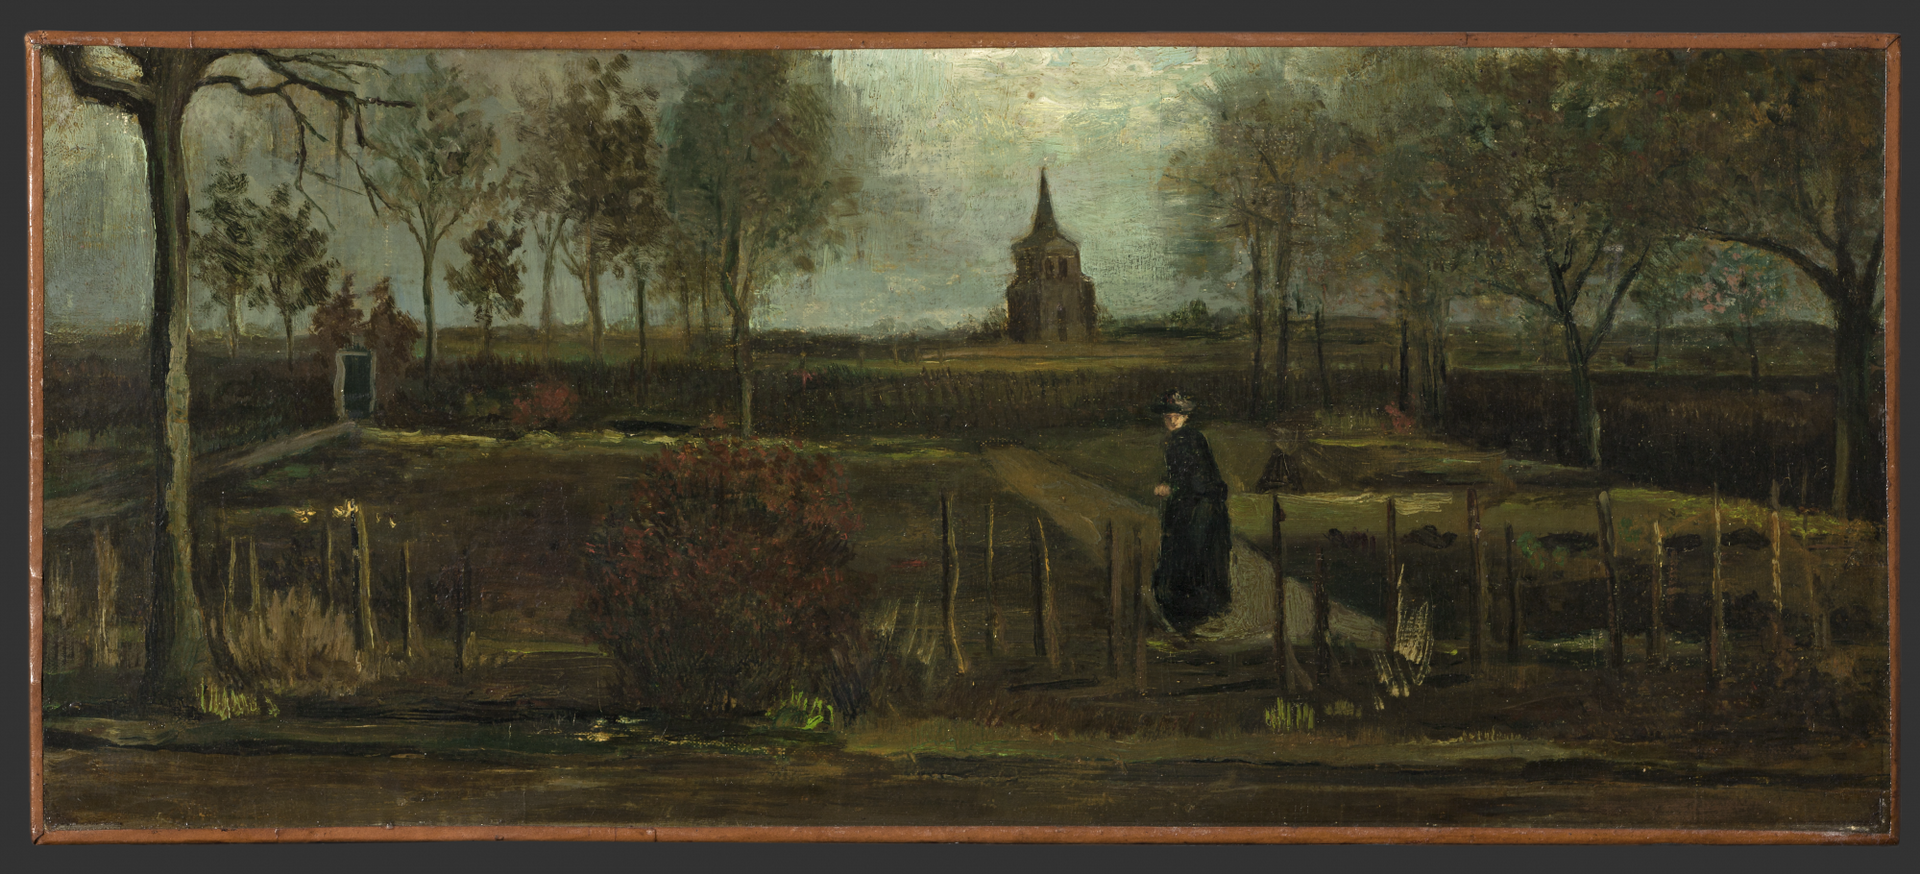 Vincent van Gogh's The Parsonage Garden at Nuenen in Spring (1884) © Groninger Museum, on loan from Municipality of Groningen